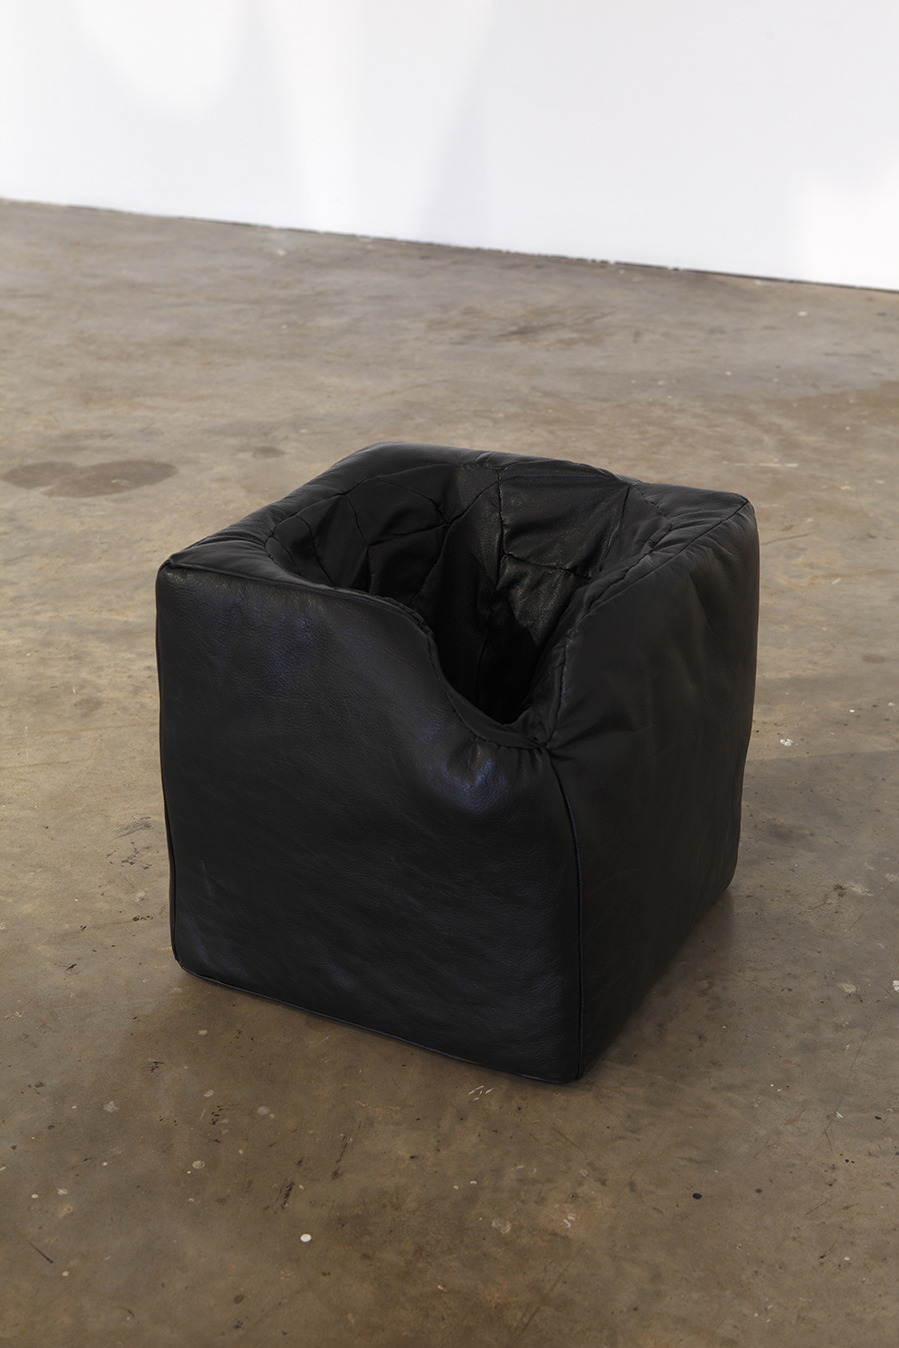 Talitha Kennedy,  Domestic Black Hole  2013. Leather, thread and polyester fibre. 30 x 30 x 30cm. Photograph Fiona Morrison.